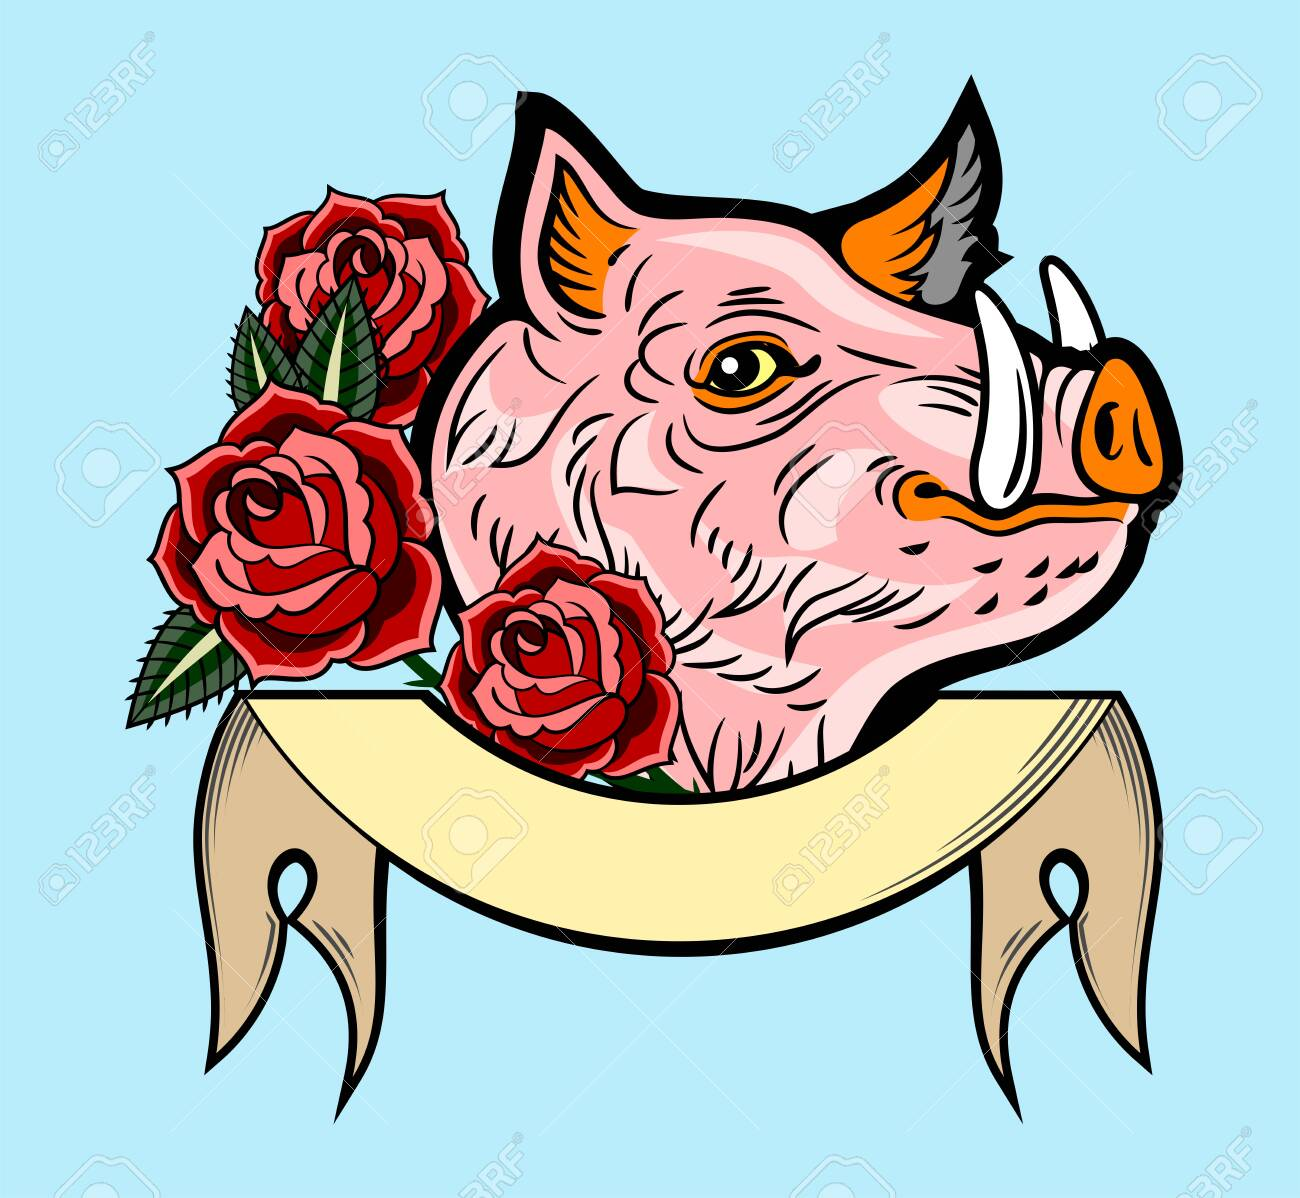 Cute, good-natured pink hog style old school tattoo, with red roses and a banner - 130854585